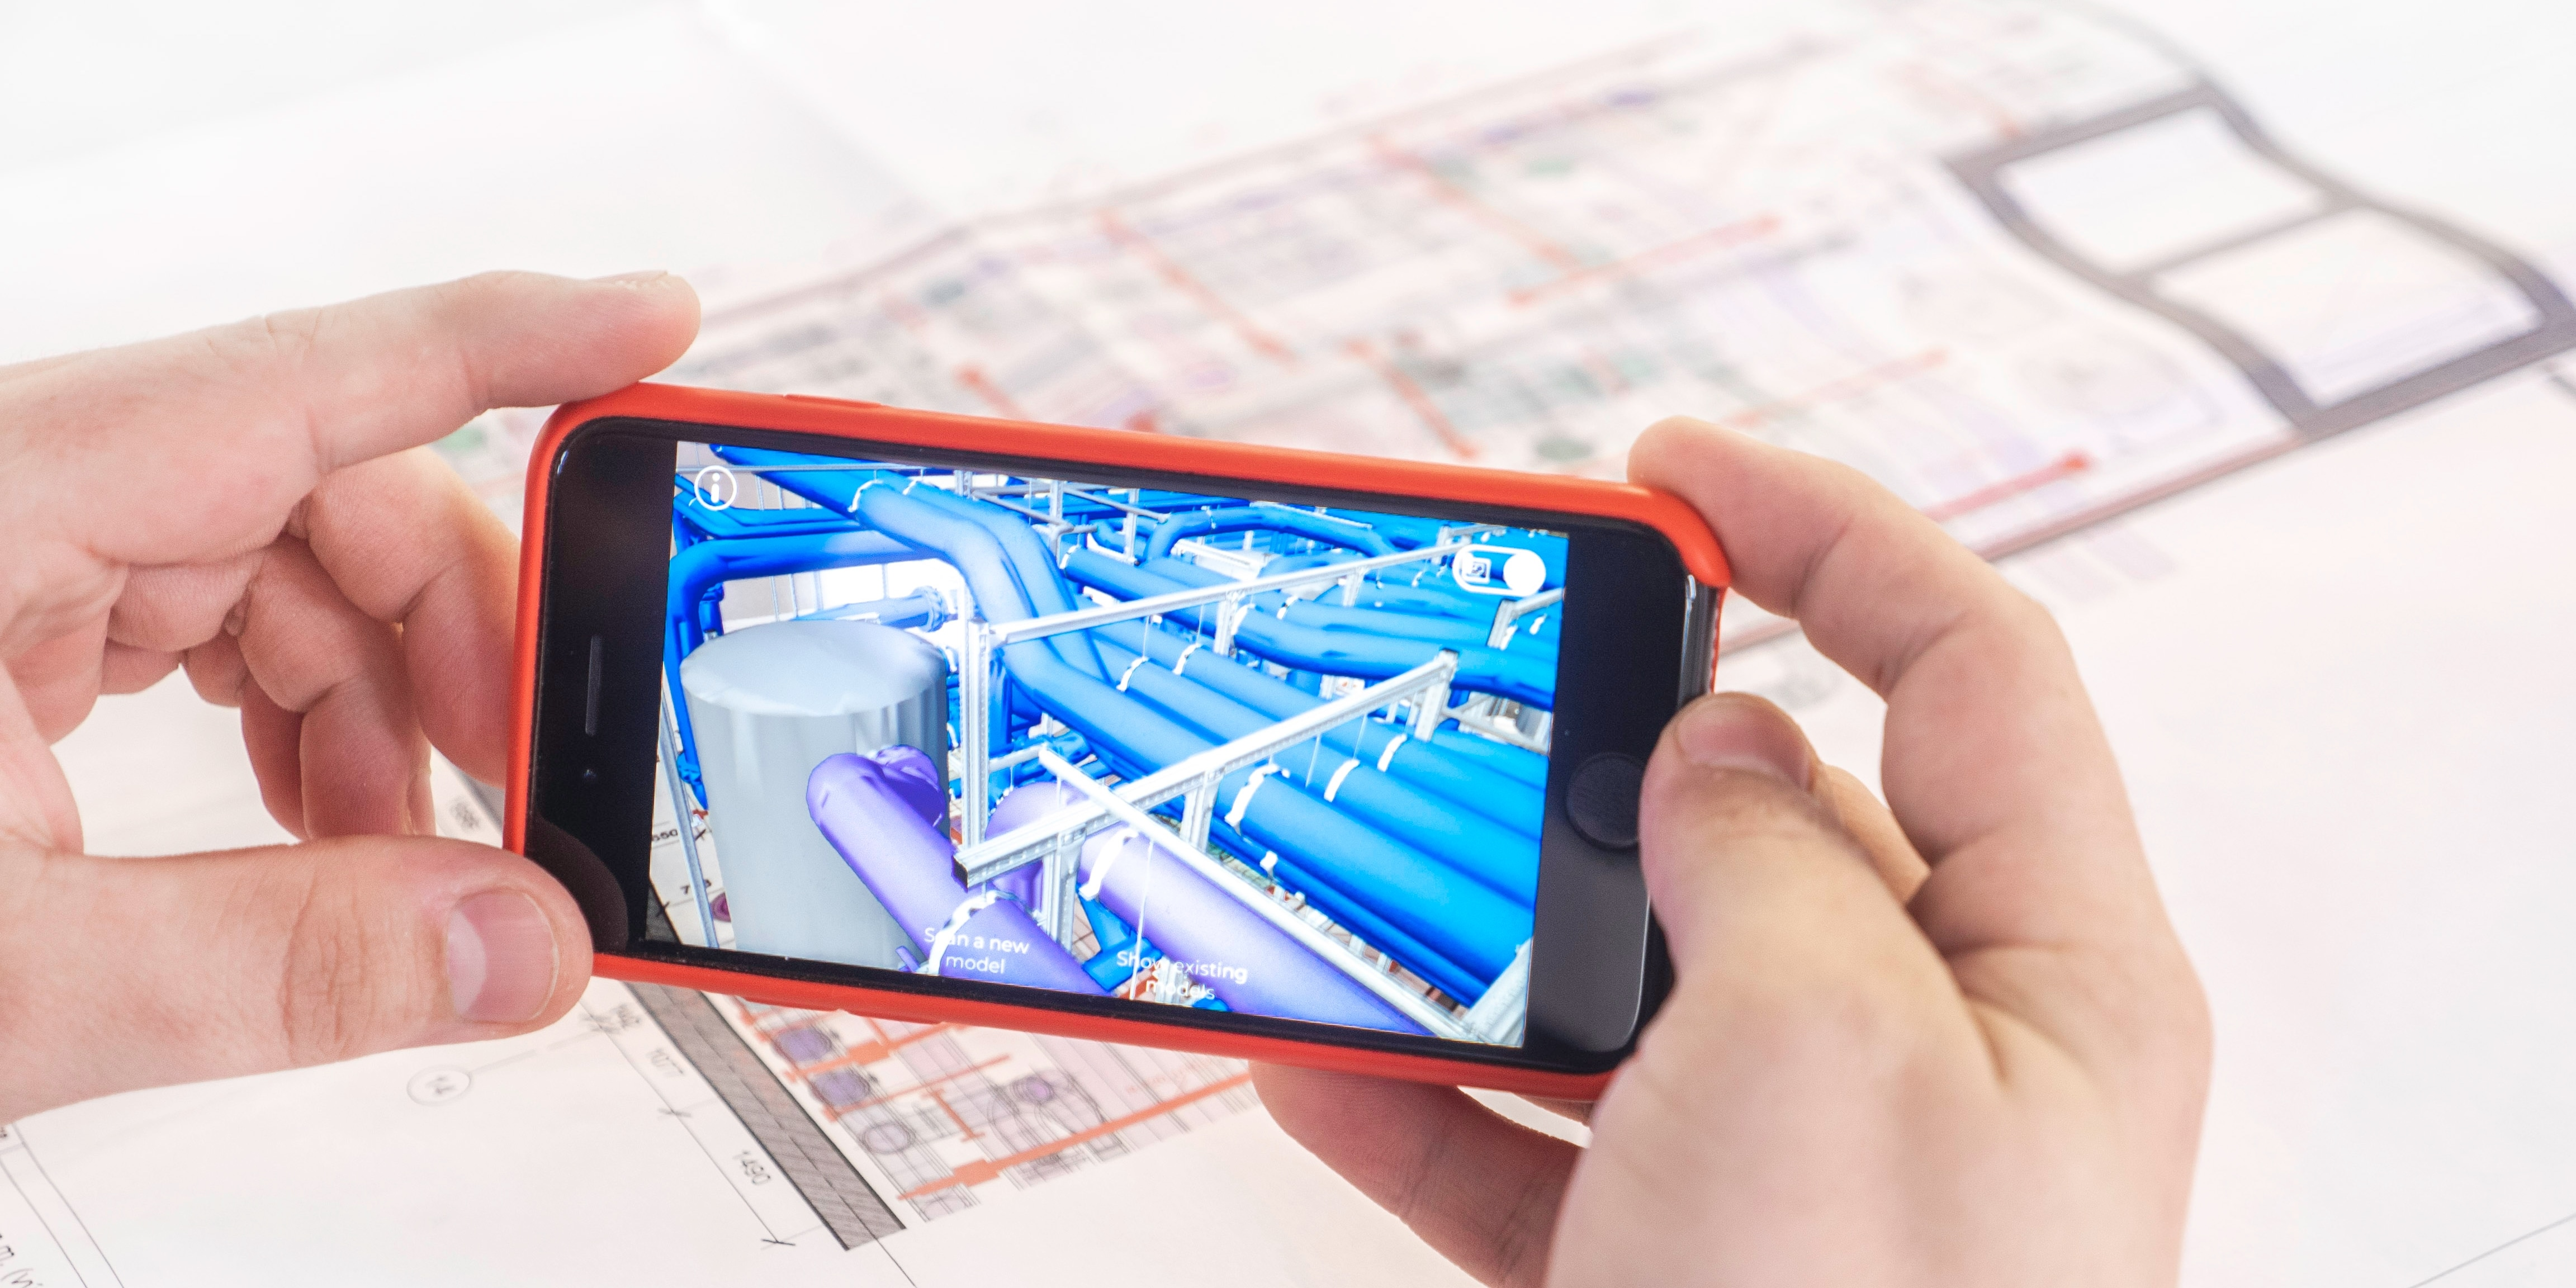 BIM used on a mobile device for paperless as-built documentation of a building